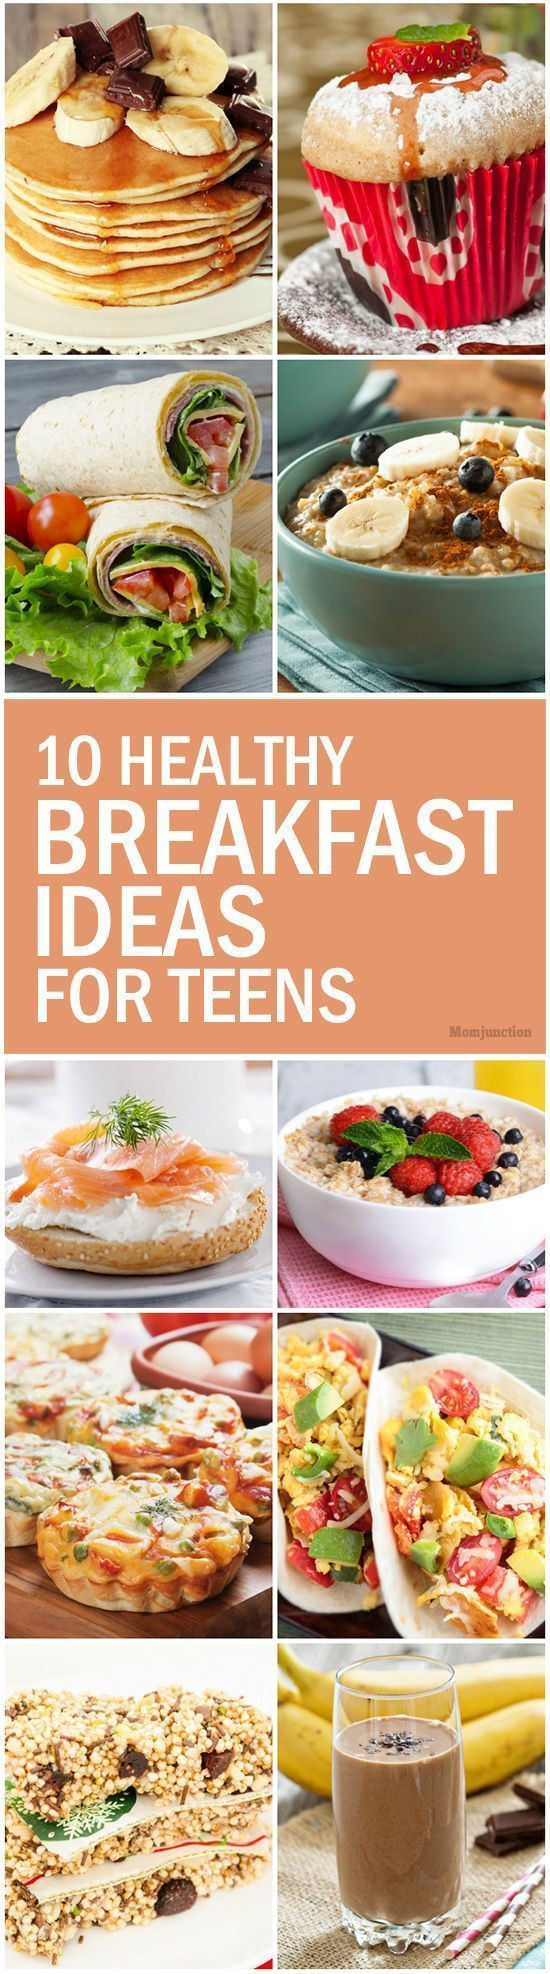 Healthy Breakfast Ideas For Teens  1000 images about Teen Topics on Pinterest